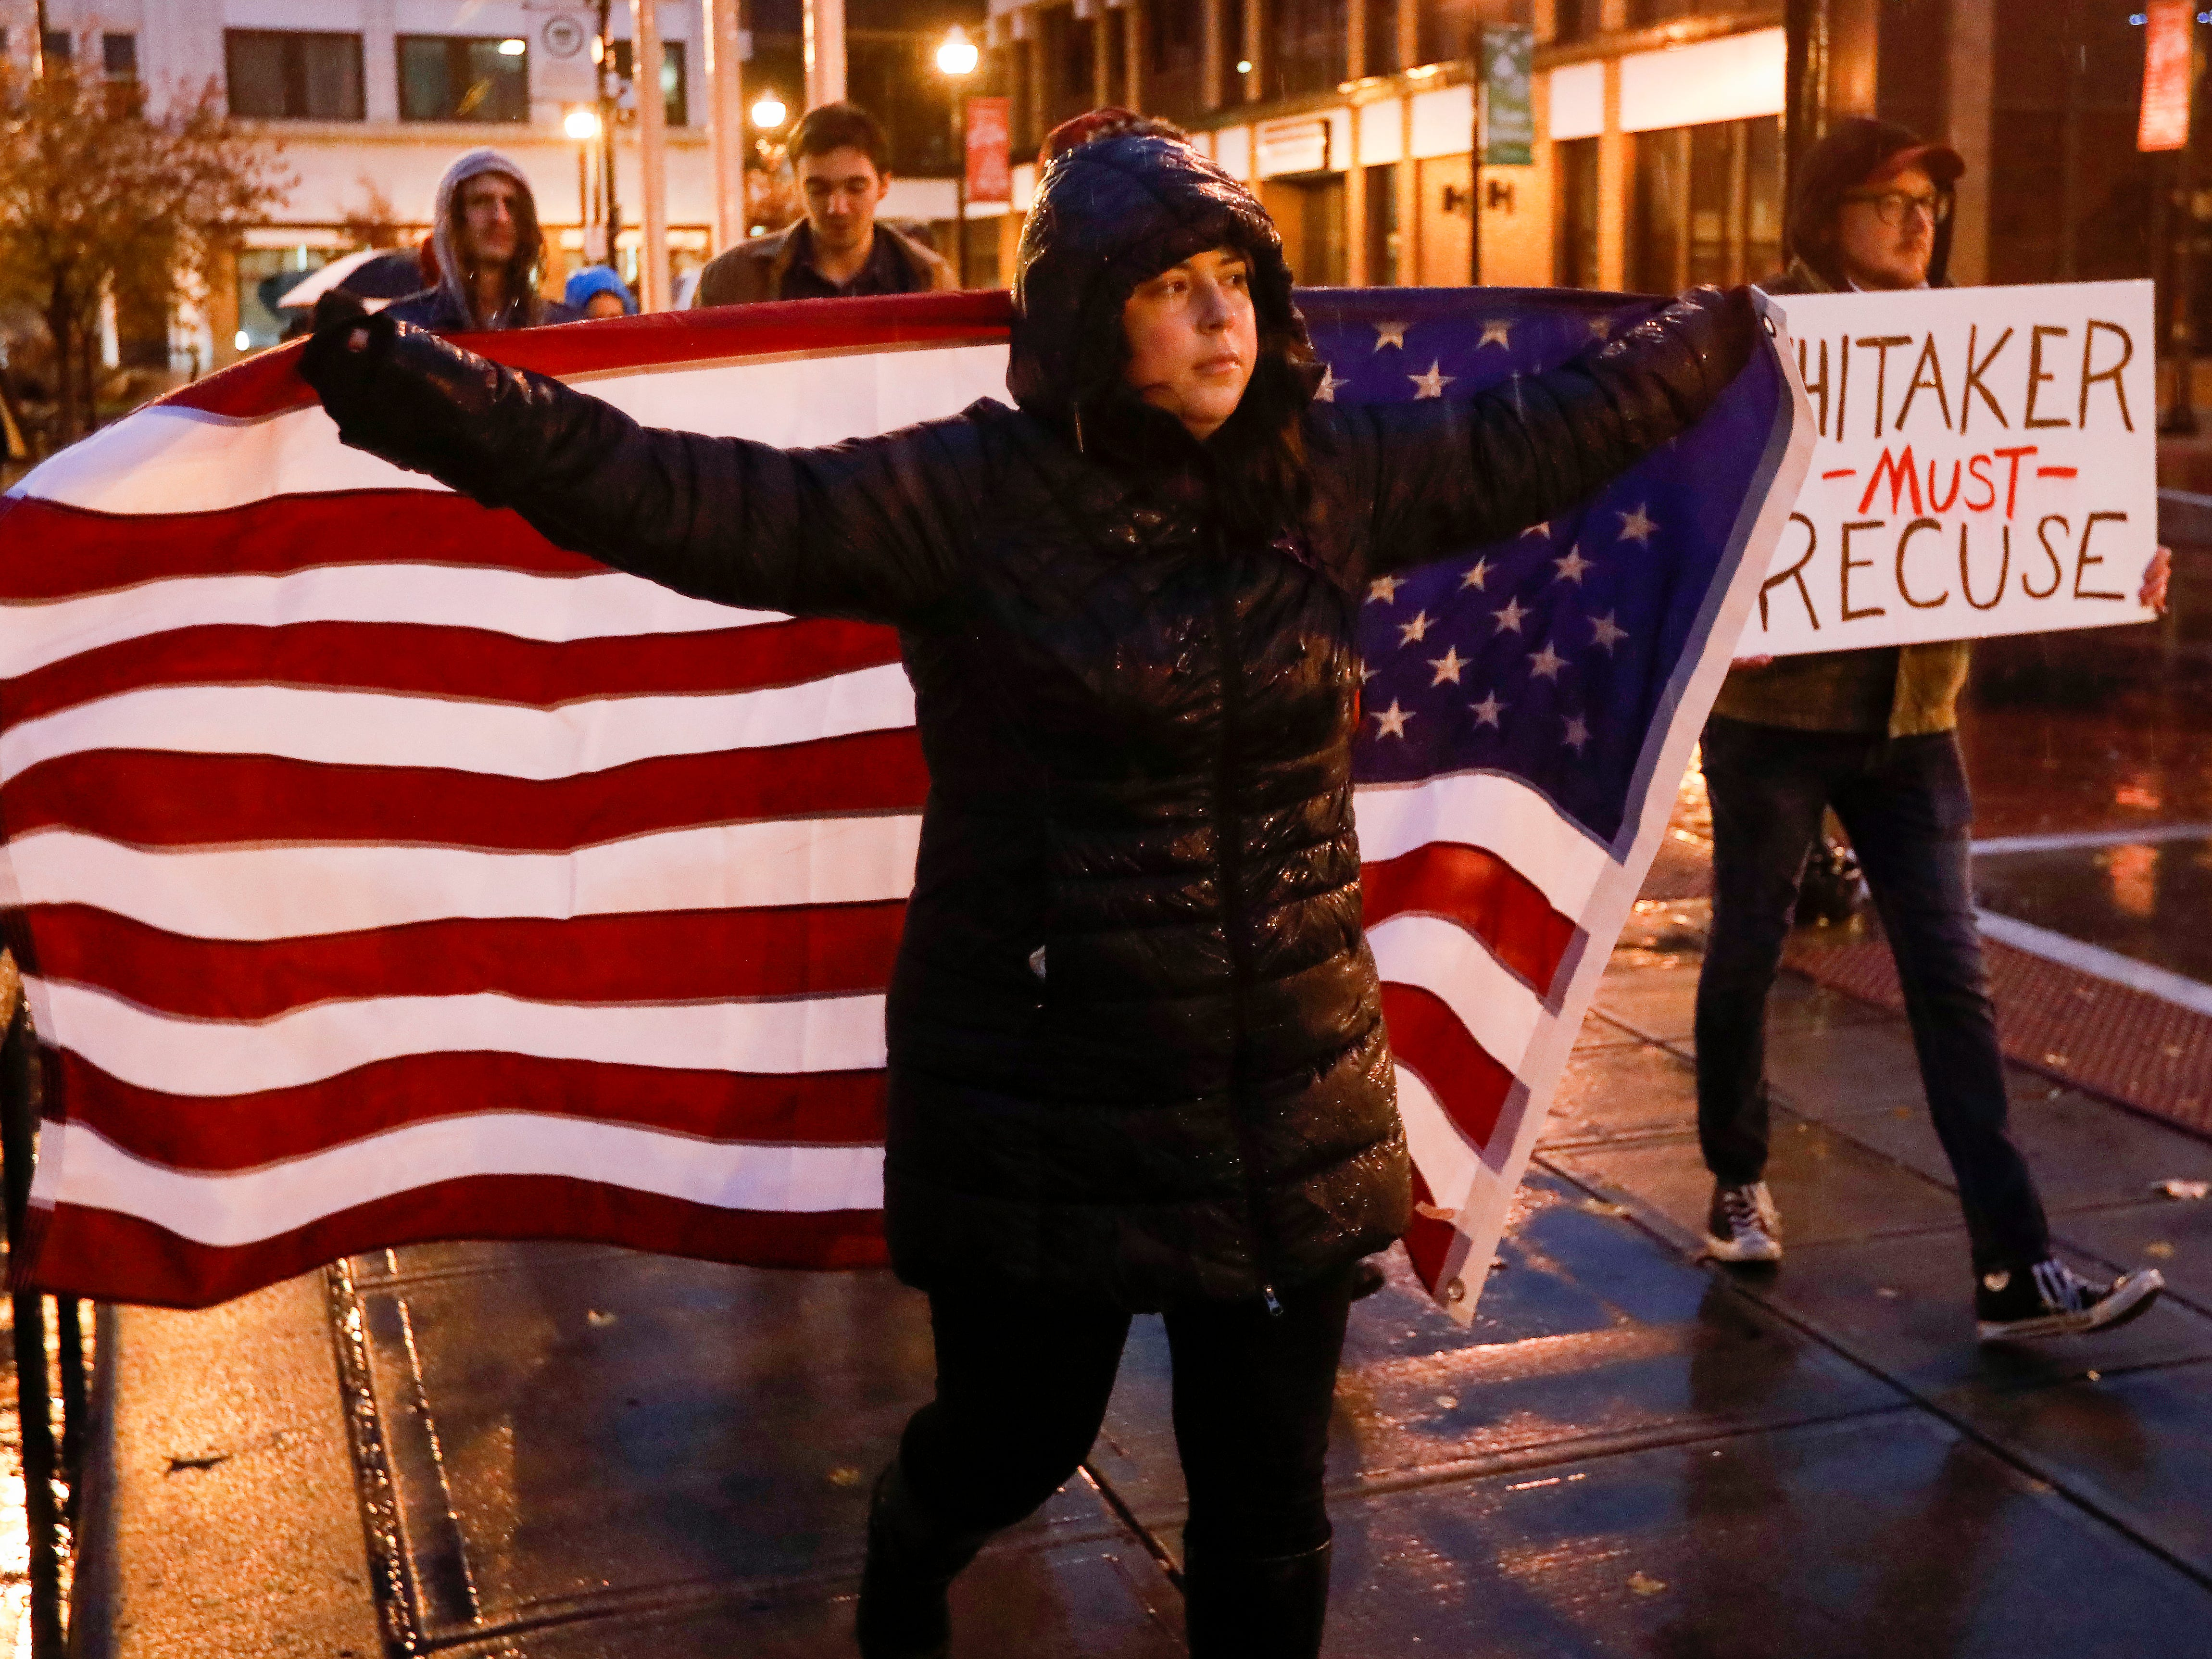 "Sheila Prost, of Springfield, carries a U.S. flag as she marches around Park Central Square on Thursday, Nov. 8, 2018. Prost said: ""I'm here to protest and demand that the new attorney general recuse himself from the Mueller investigation."""